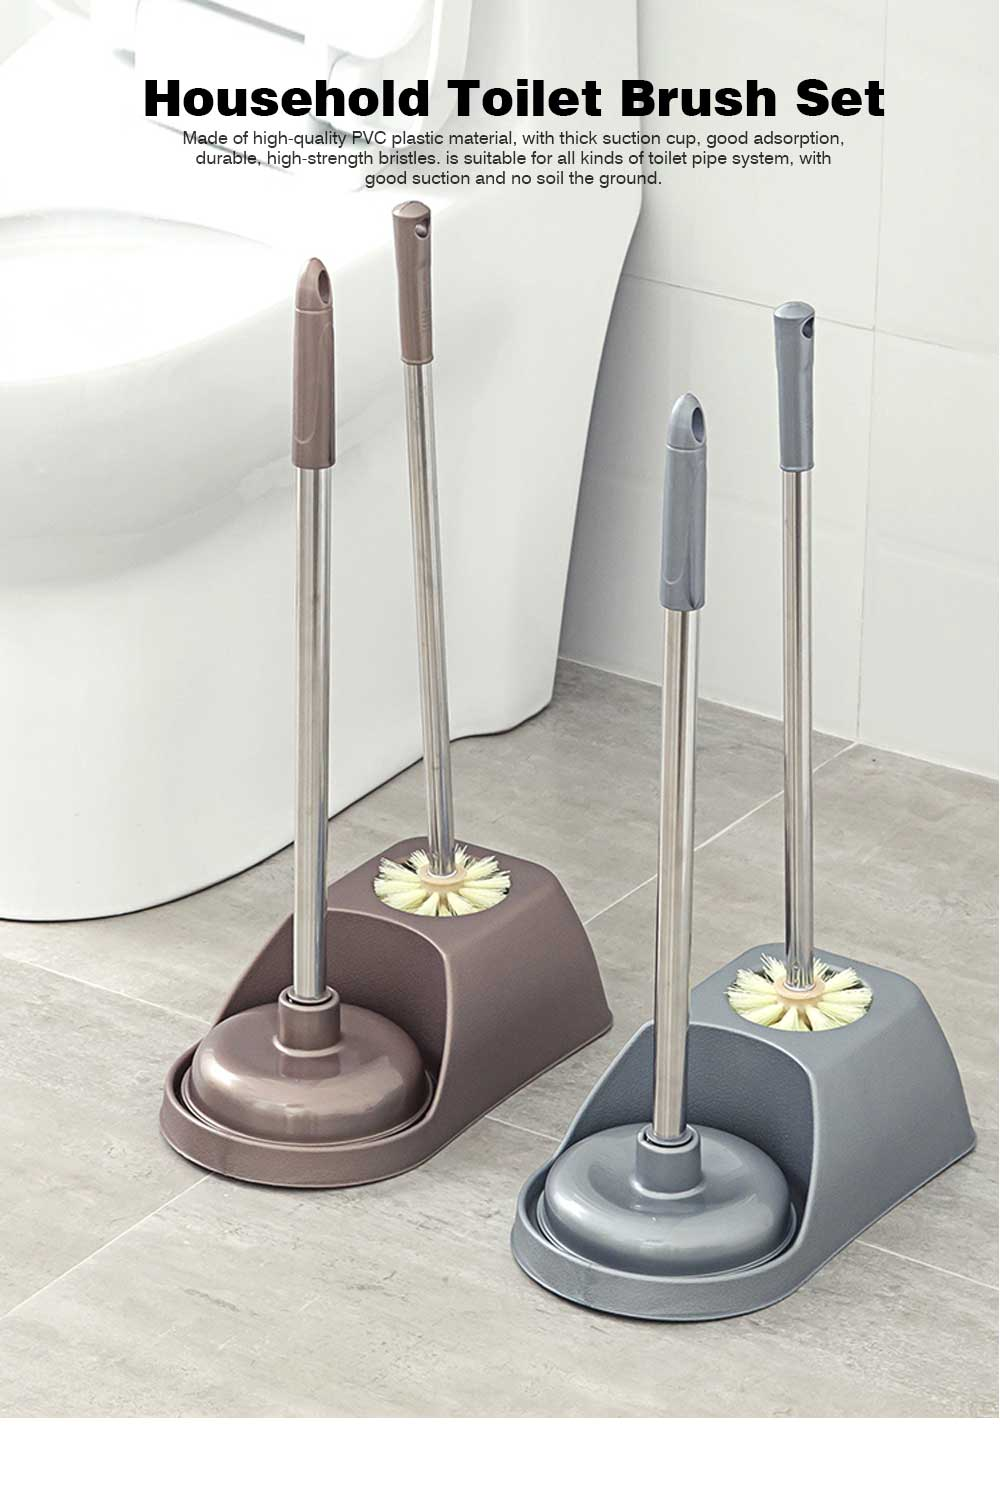 Household Toilet Brush Set, Powerful Brush Set for Cleaning Toilet 0